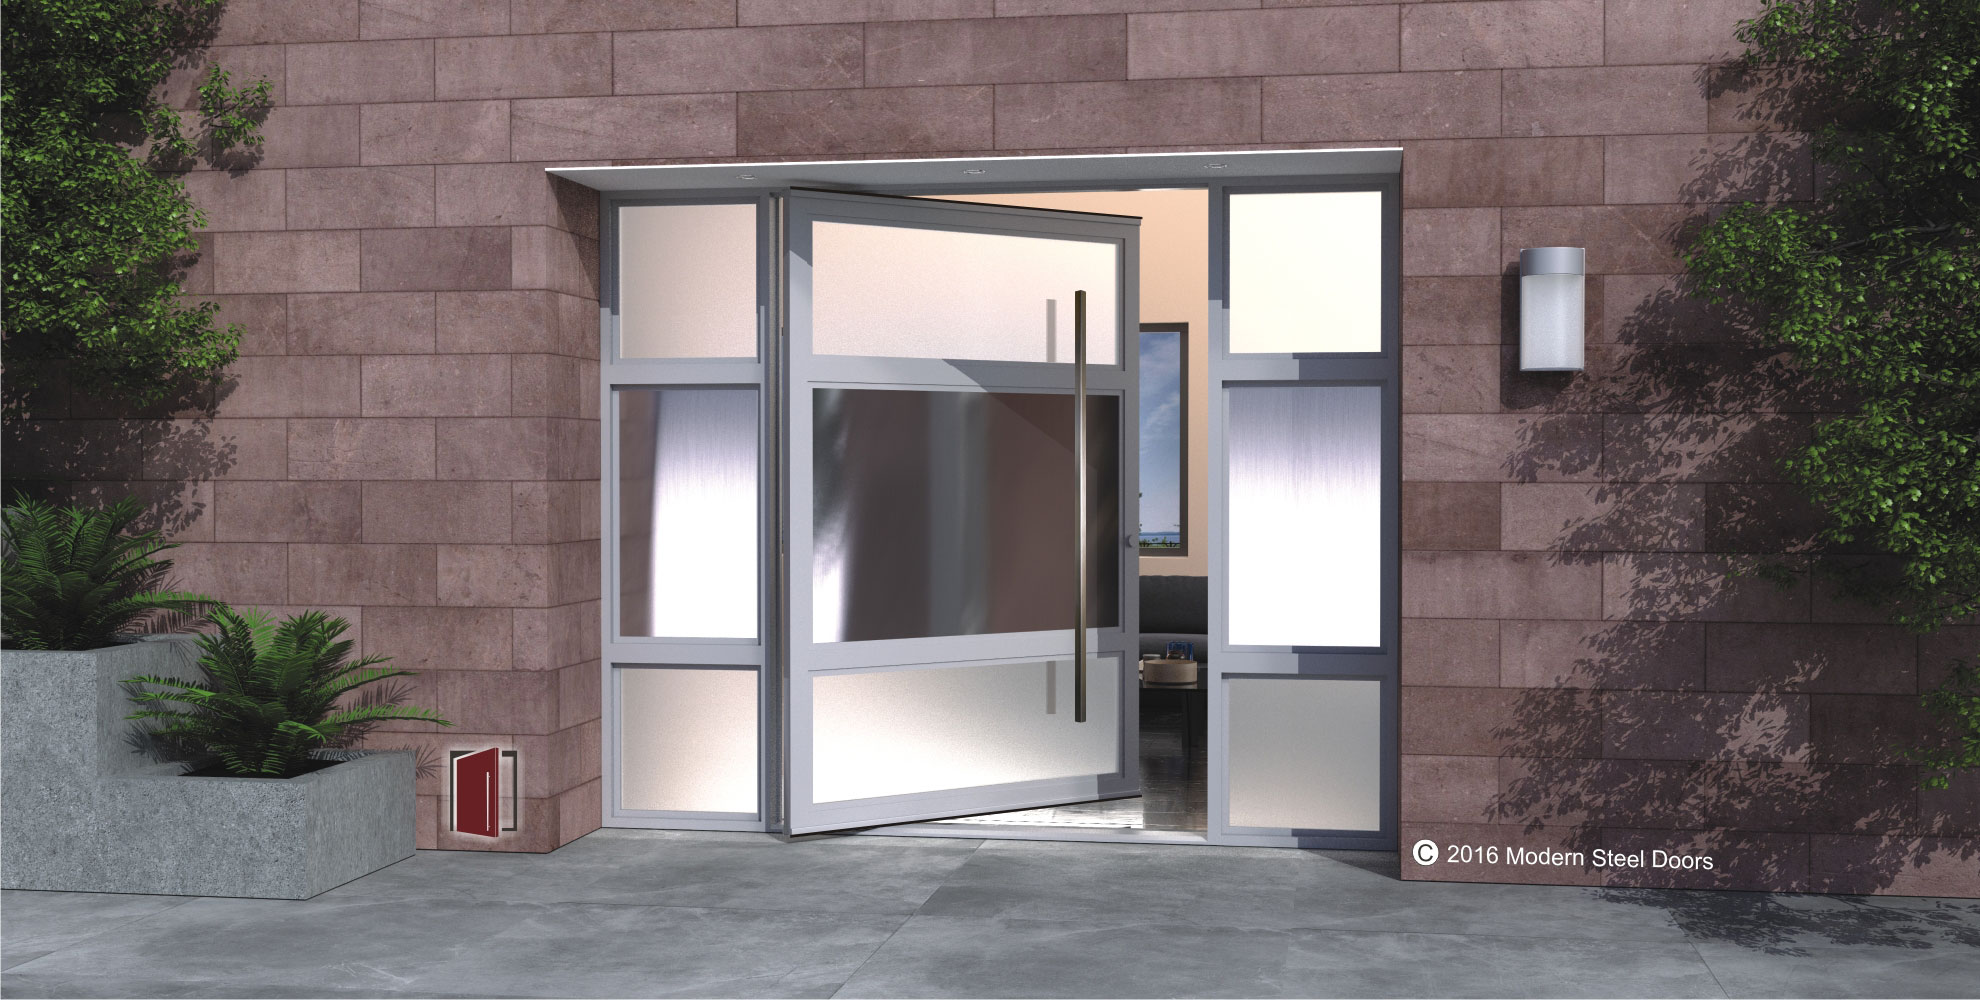 horizon modern steel door design made of tinted and frosted glass with square stainless steel door pulls and sidelights